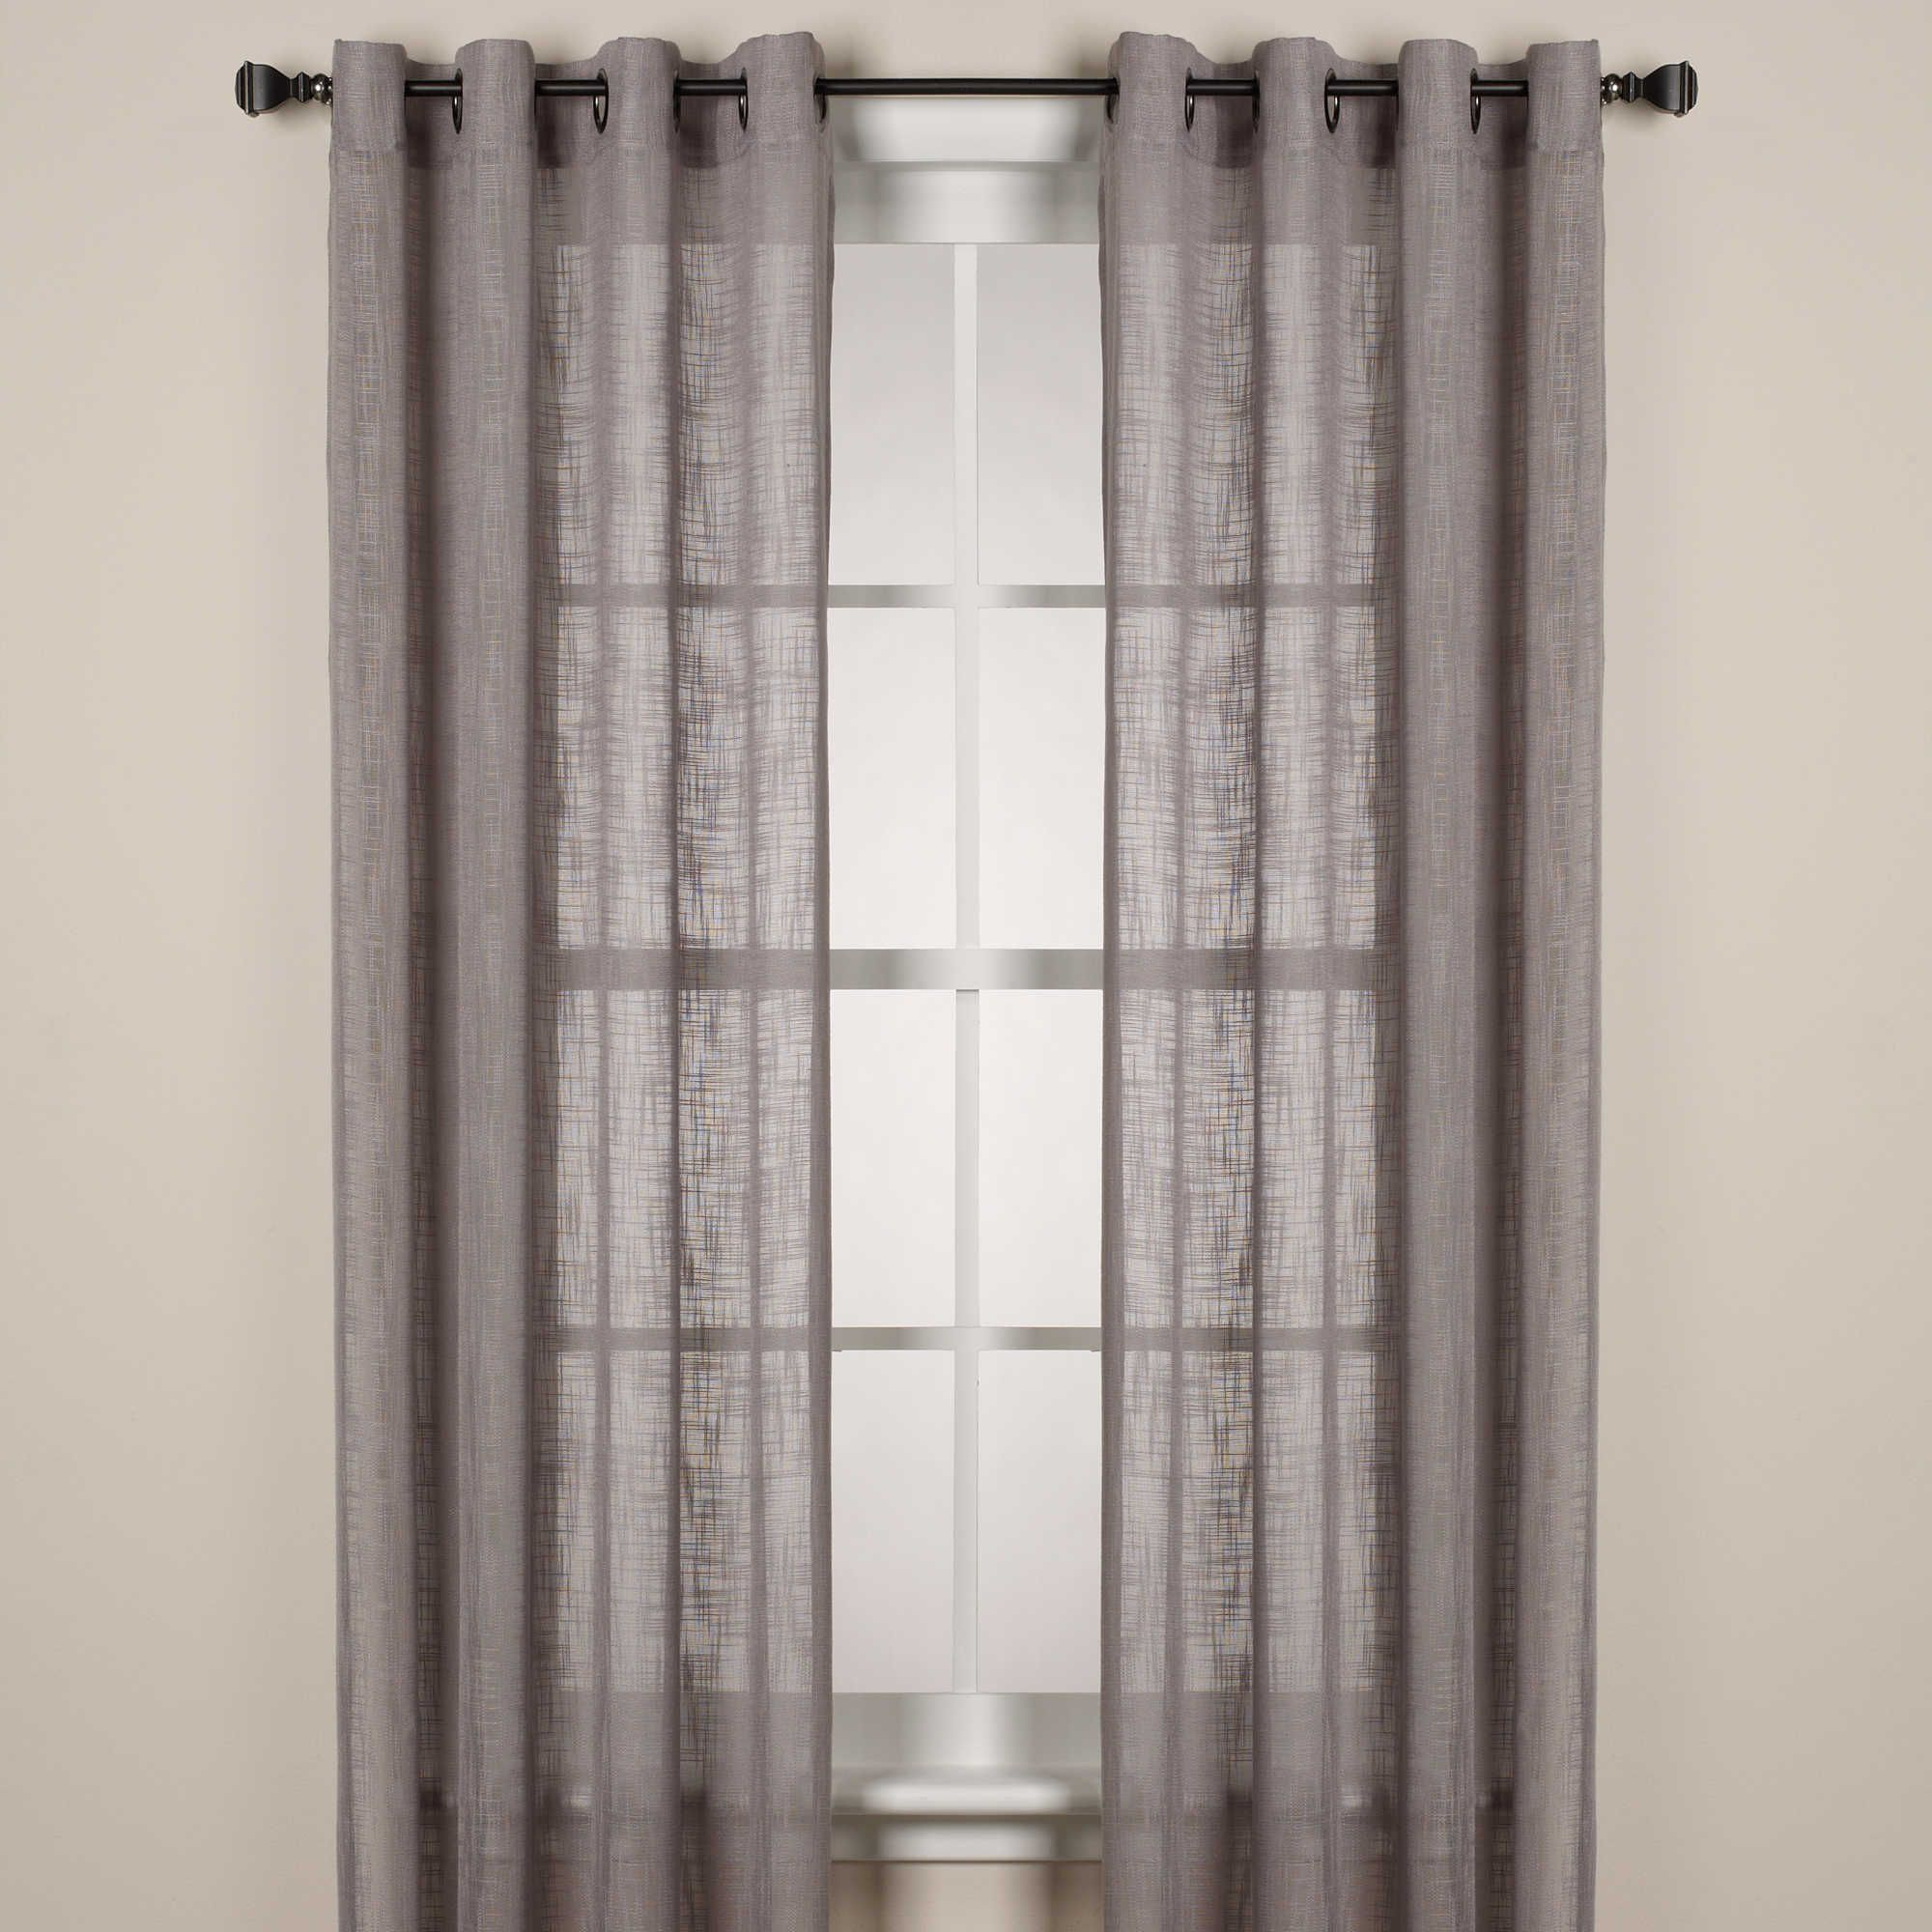 Alton Solid Grommet Window Curtain Panel- Bed Bath And